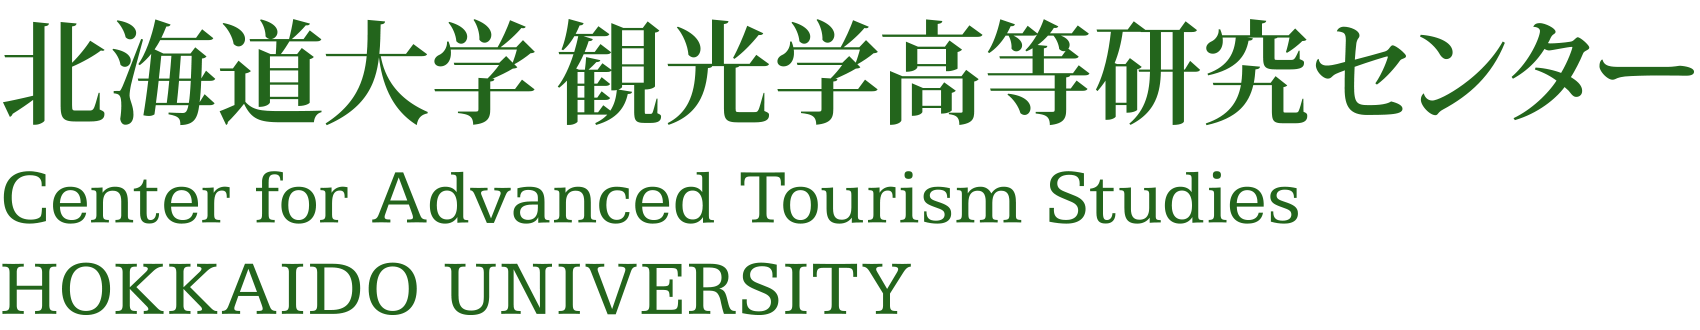 Center For Advanced Tourism Studies HOKKAIDO UNIVERSITY